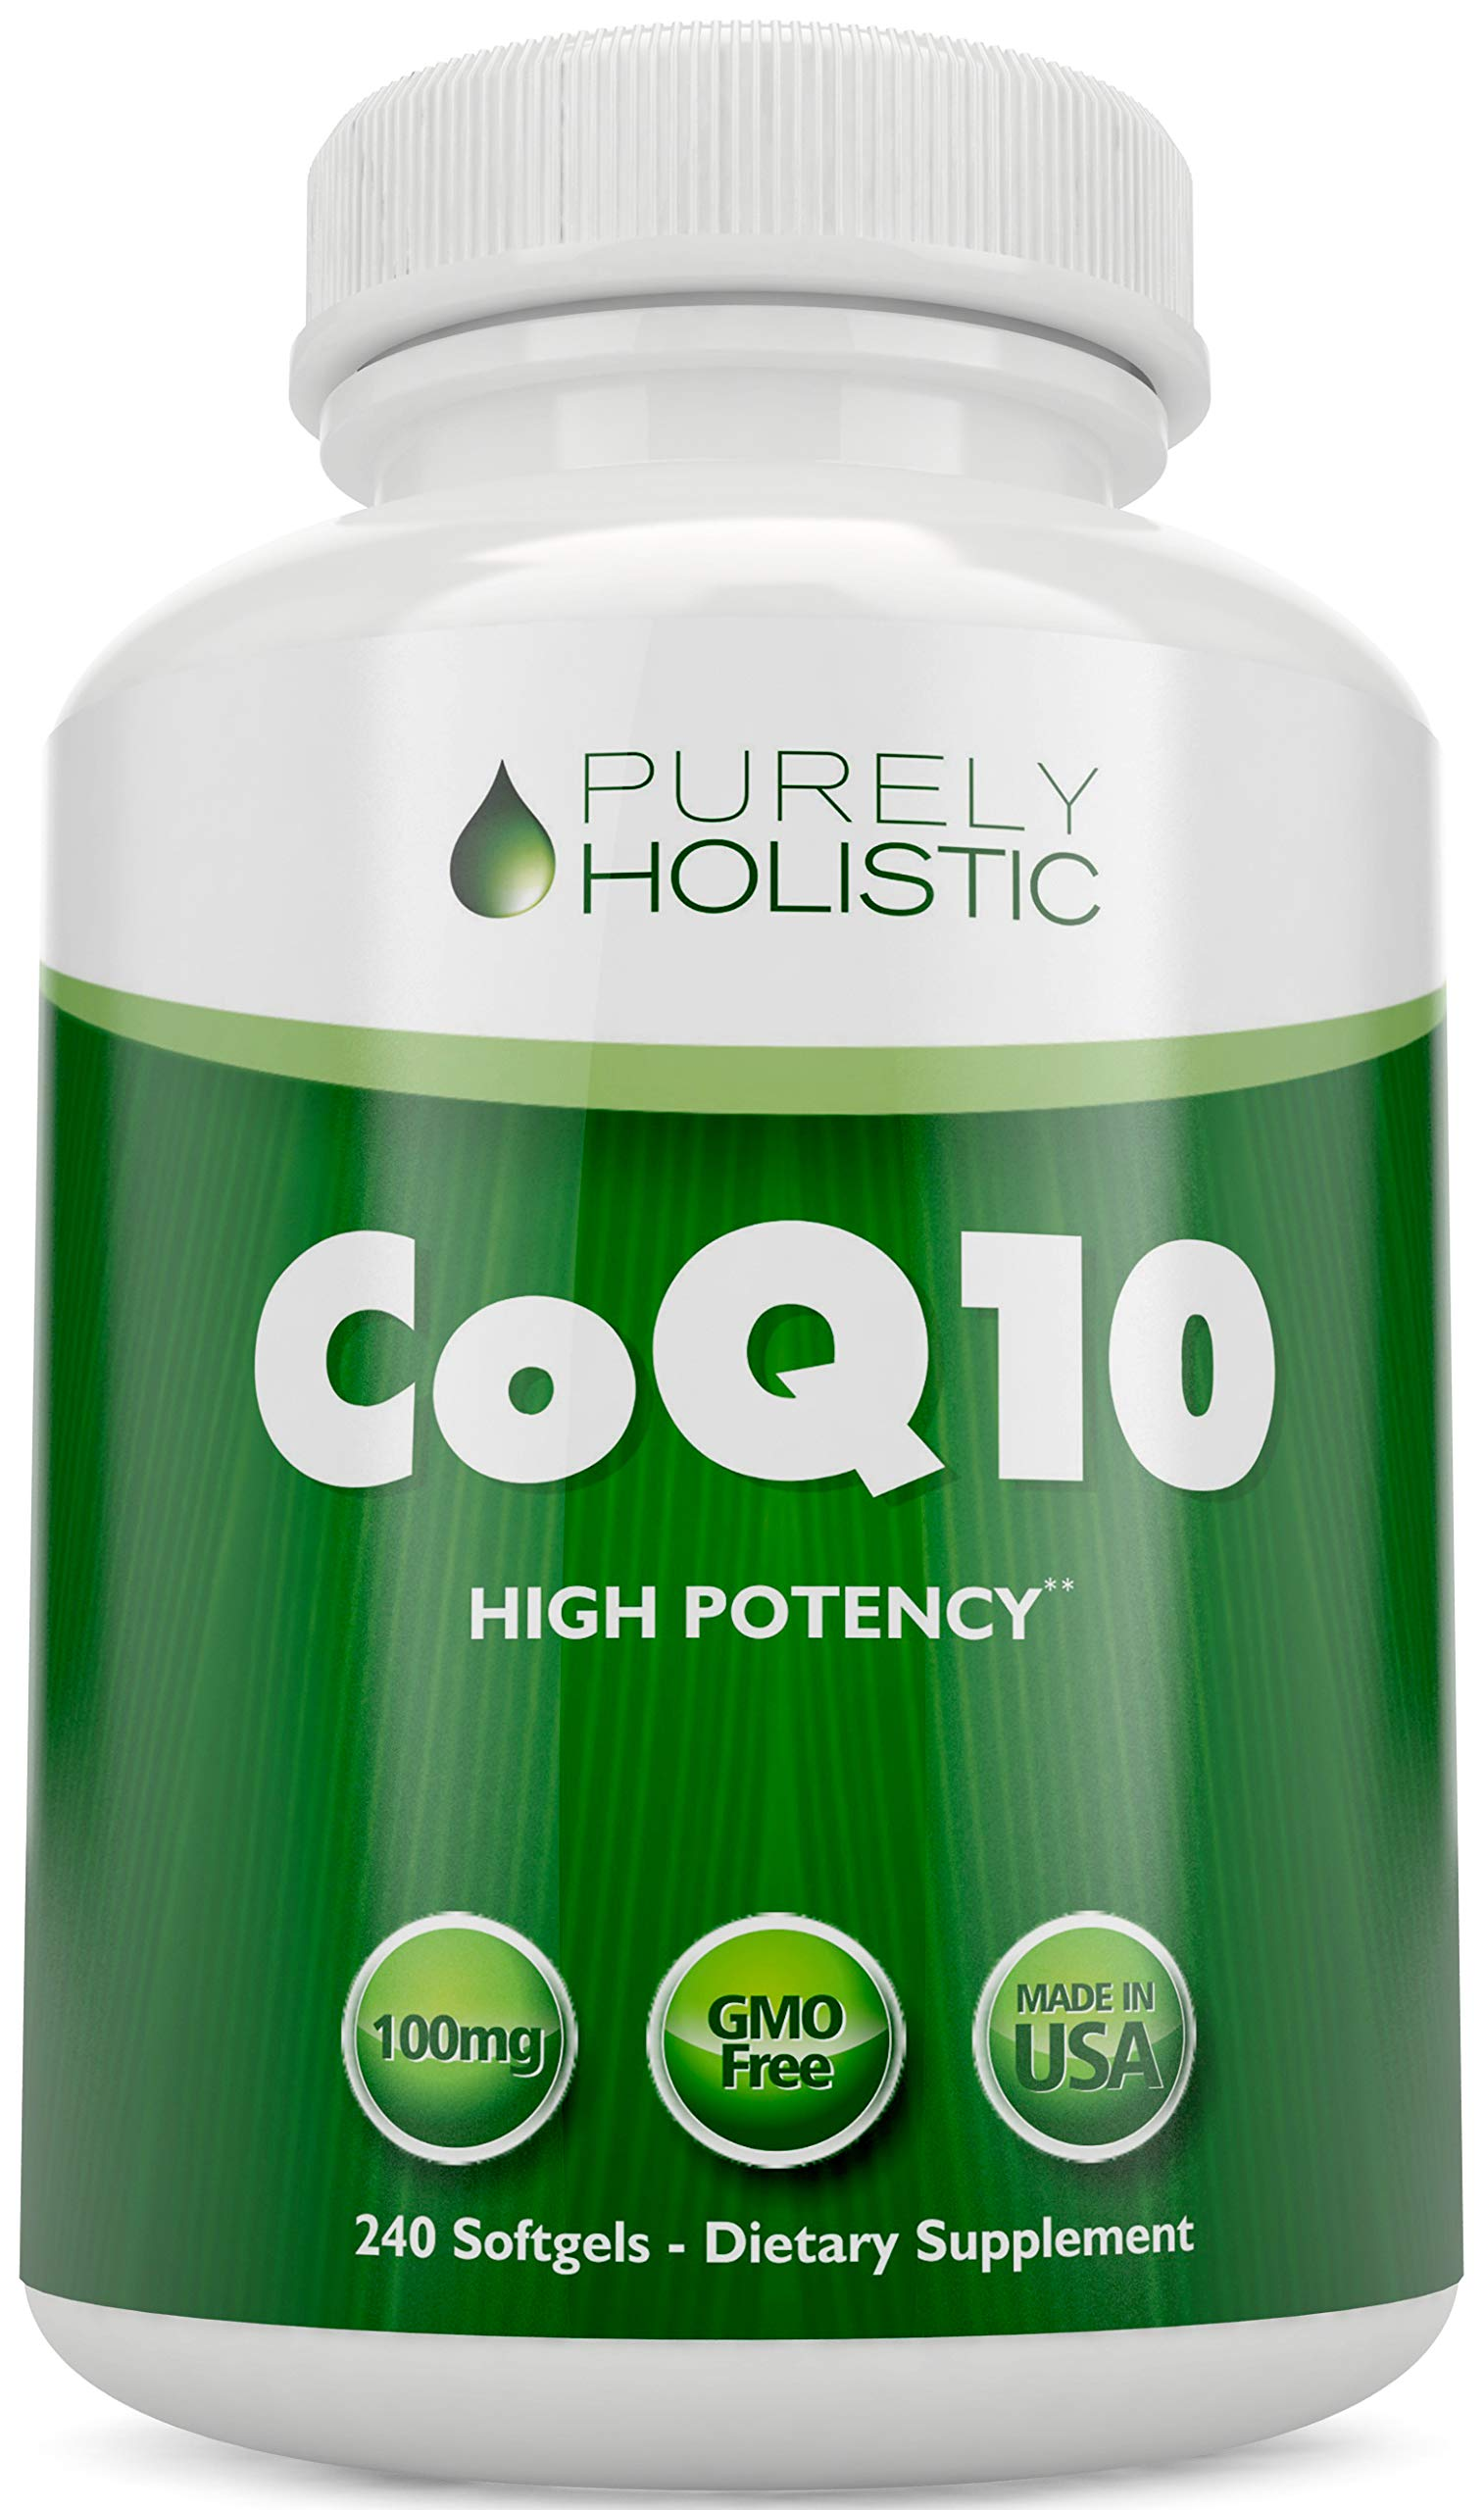 CoQ10 240 SoftGels ★ 100% Money Back Guarantee ★ High Absorption Coenzyme Q10 ★ Made in The USA to GMP Standards ★ Up to 8 Month's Co Q 10 Supply by Purely Holistic